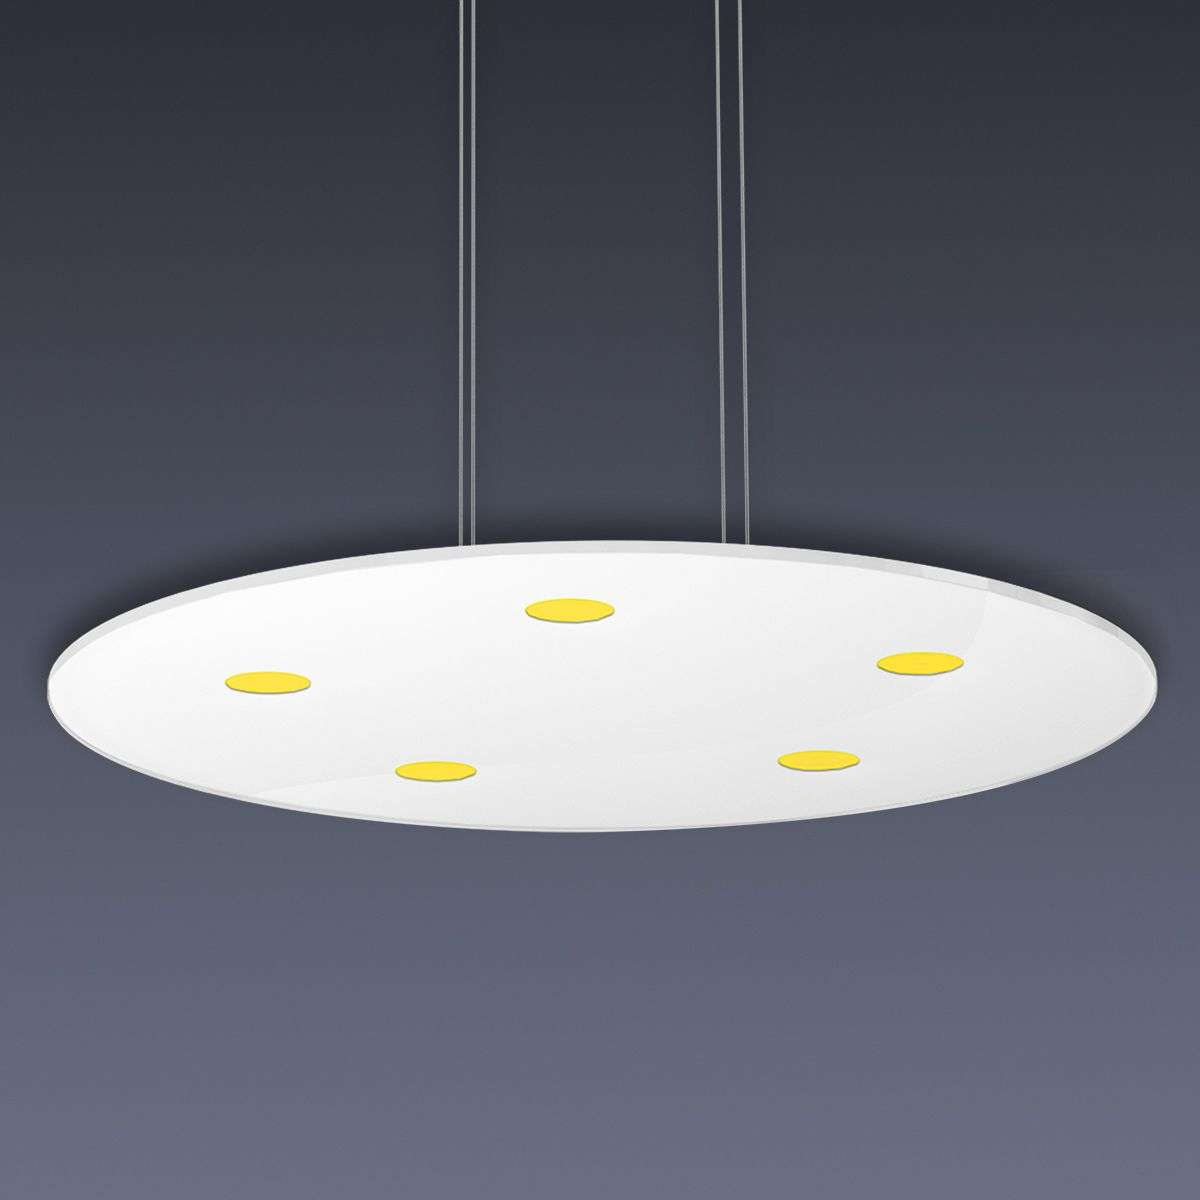 round led pendant light sunia with touch dimmer. Black Bedroom Furniture Sets. Home Design Ideas